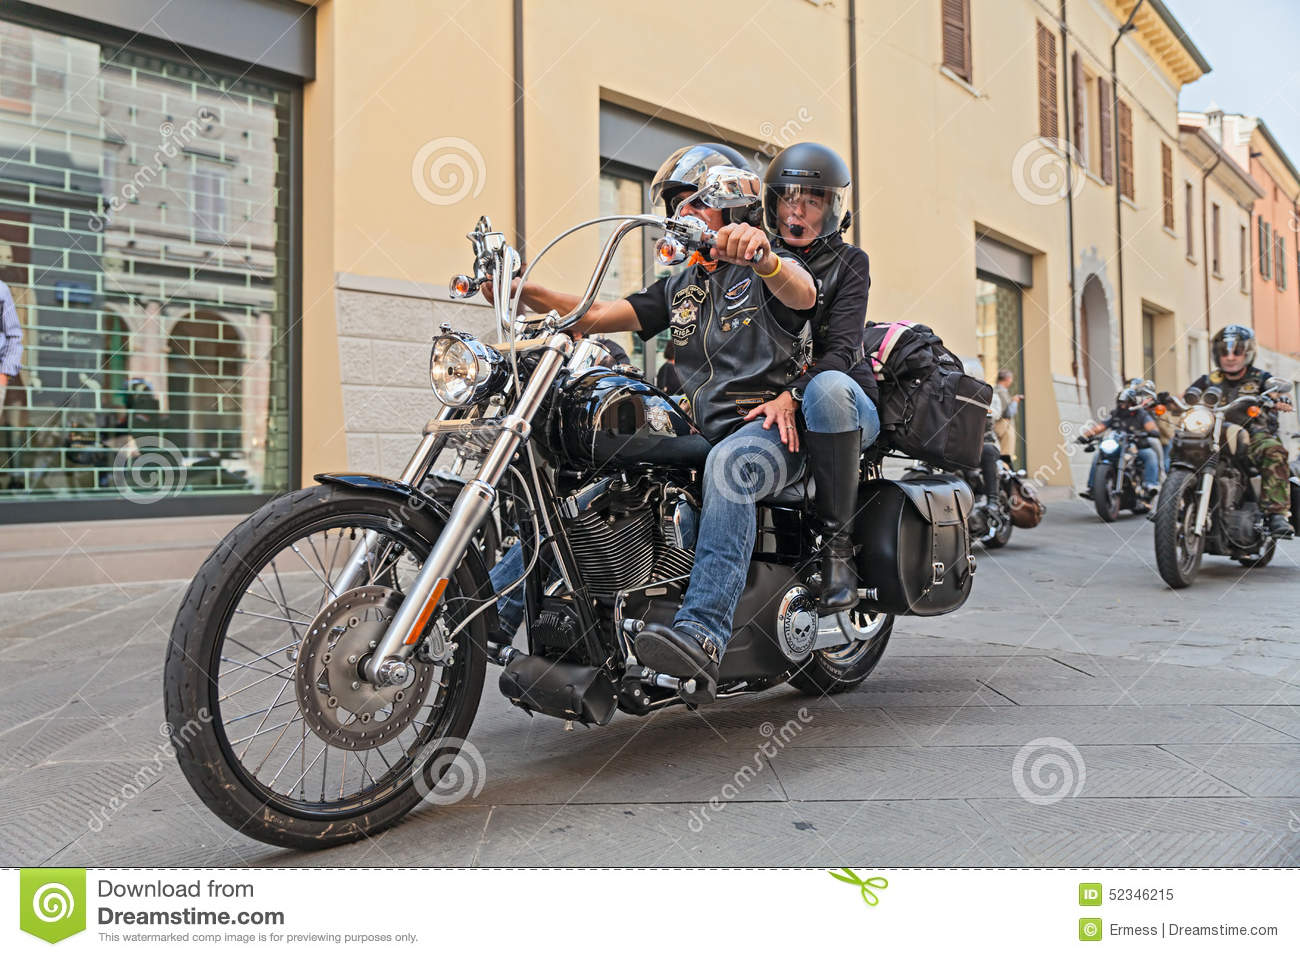 A couple on a harley davidson motorcycle editorial image image of bikers riding harley davidson royalty free stock photo kristyandbryce Image collections